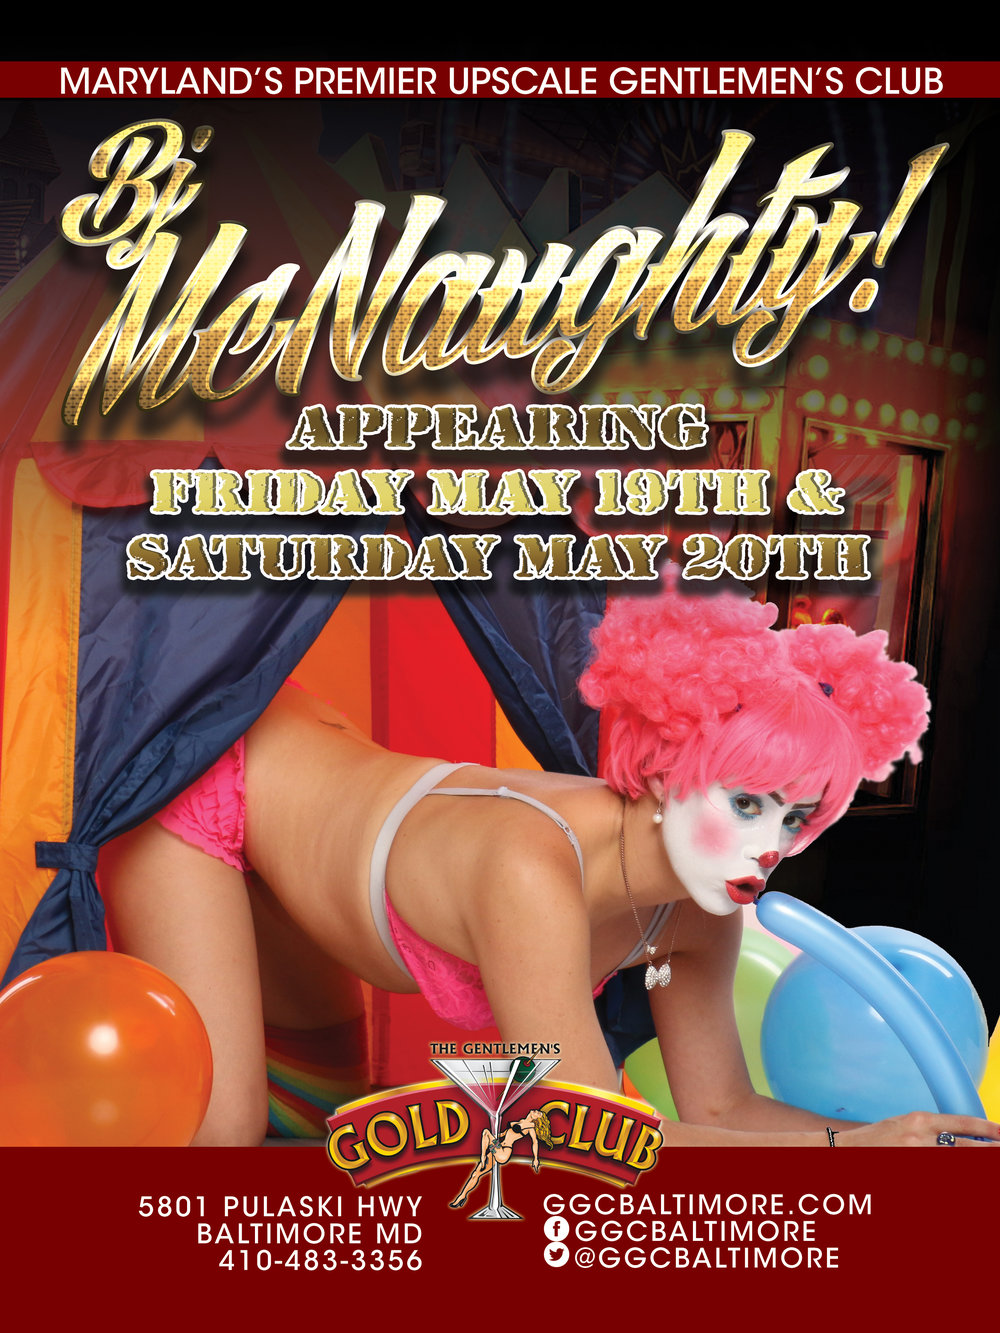 Come check out the GOLD CLUBS NAUGHTY CIRCUS featuring BJ McNAUGHTY the world famous exotic clown! Mark those calendars and don't miss this exclusive event! Shows Friday & Saturday nights!